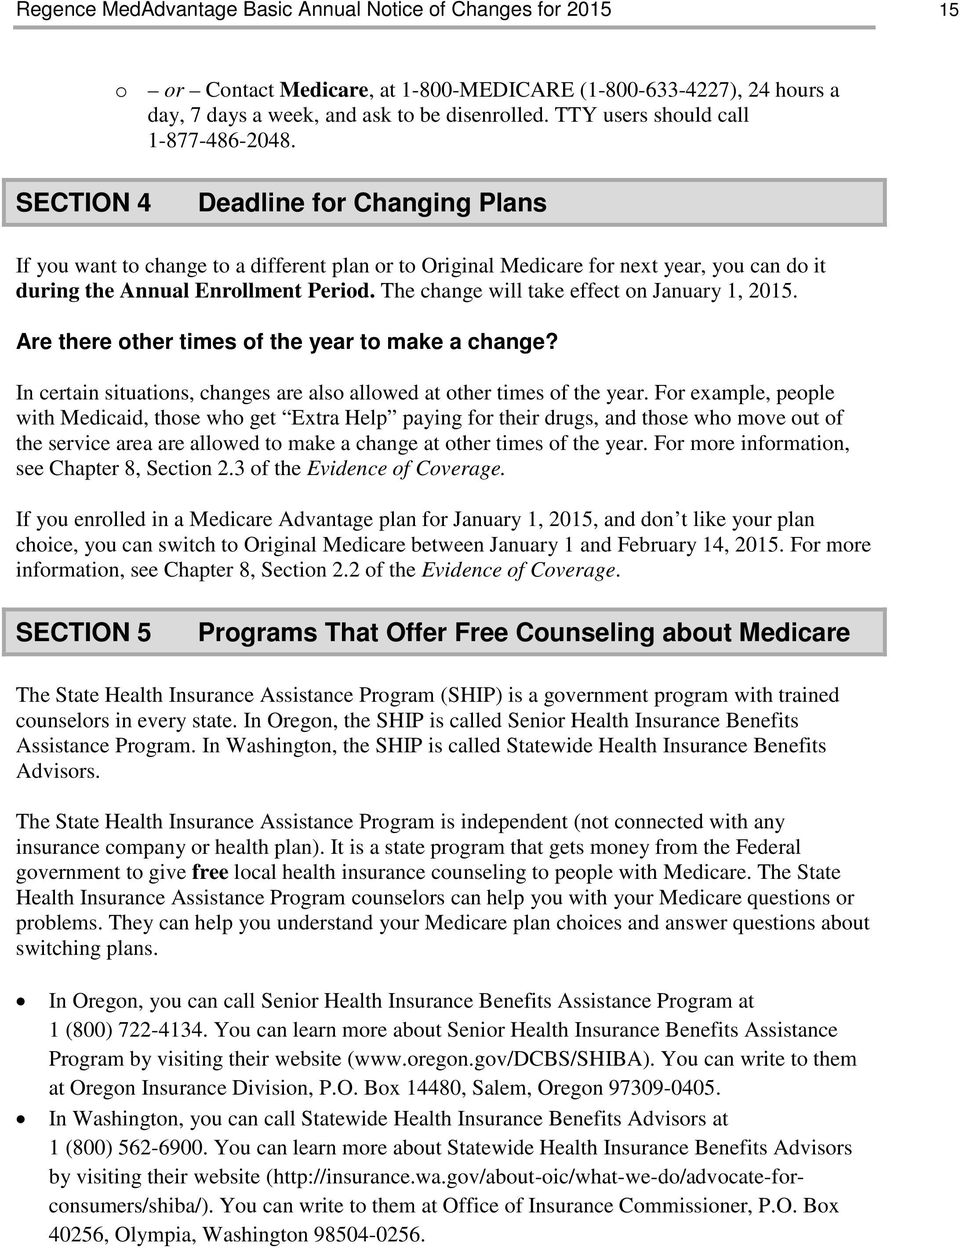 SECTION 4 Deadline for Changing Plans If you want to change to a different plan or to Original Medicare for next year, you can do it during the Annual Enrollment Period.